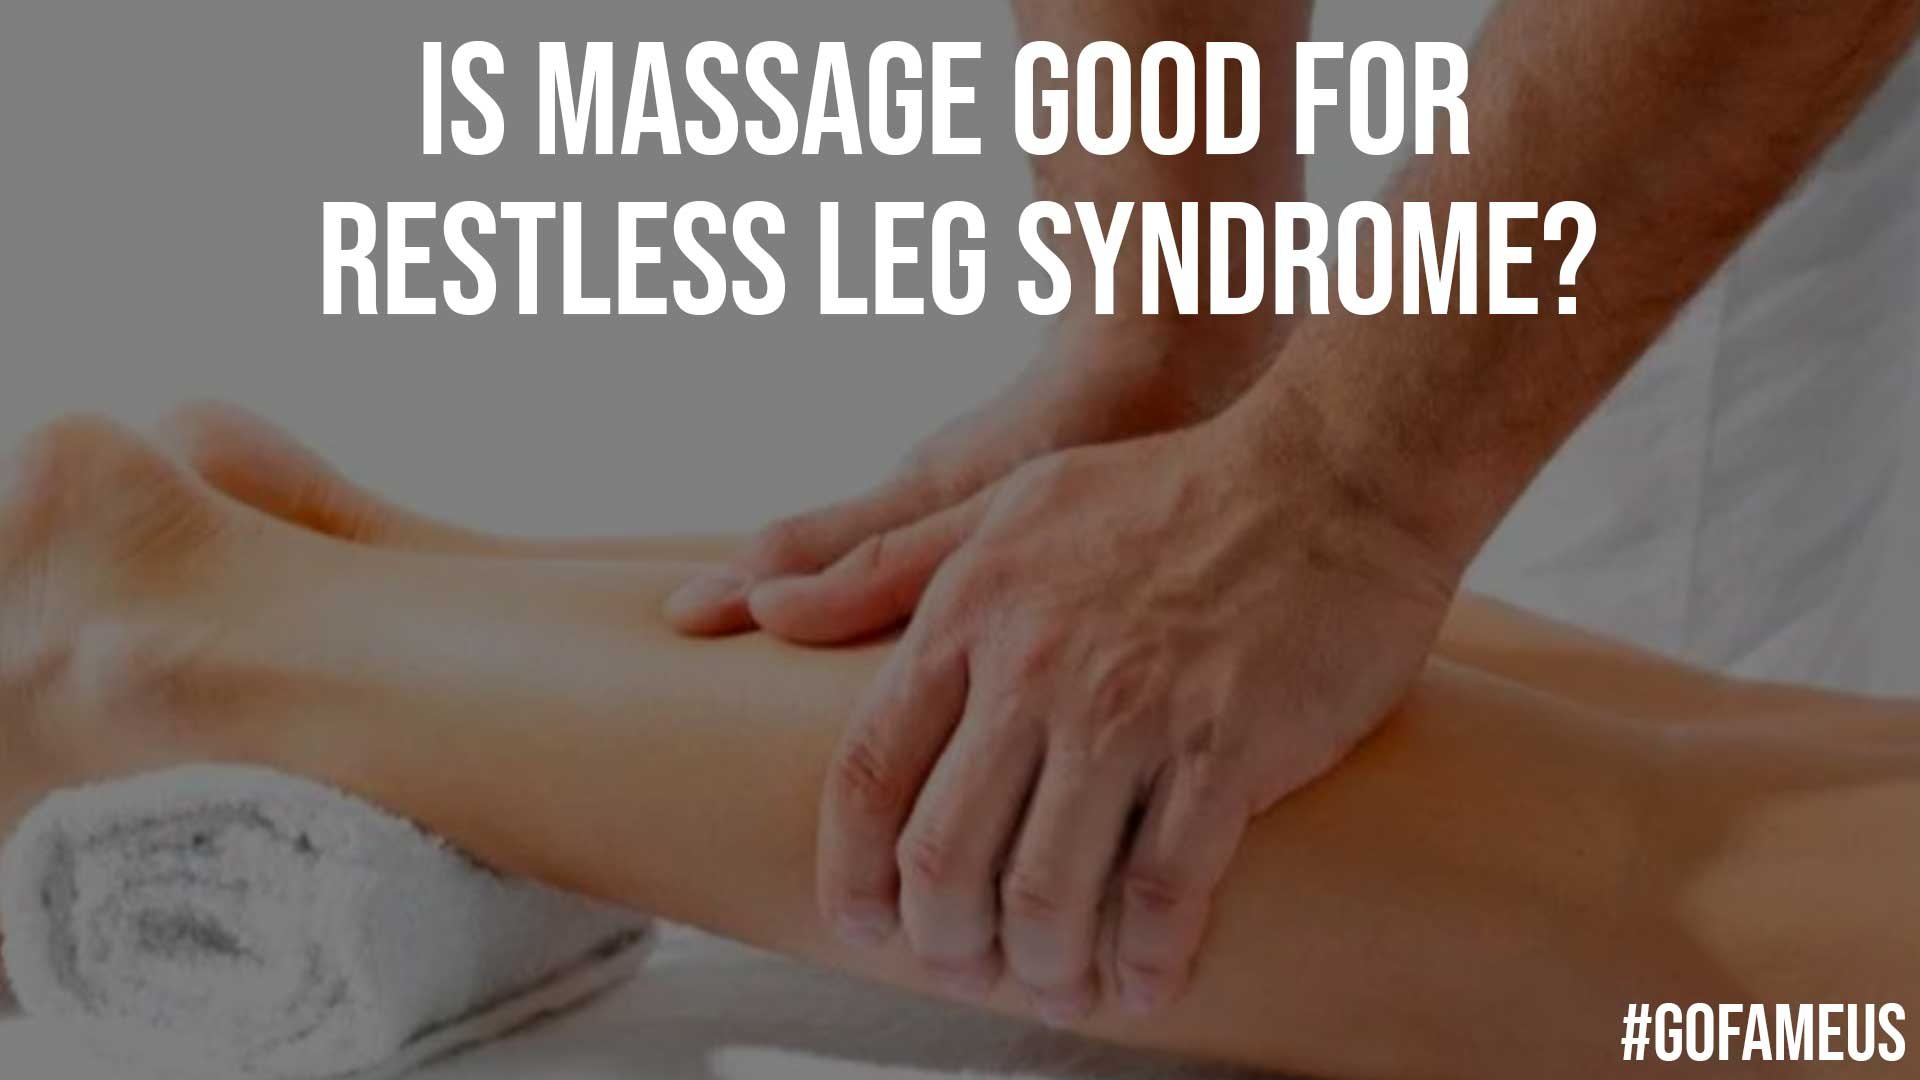 Is Massage Good for Restless Leg Syndrome